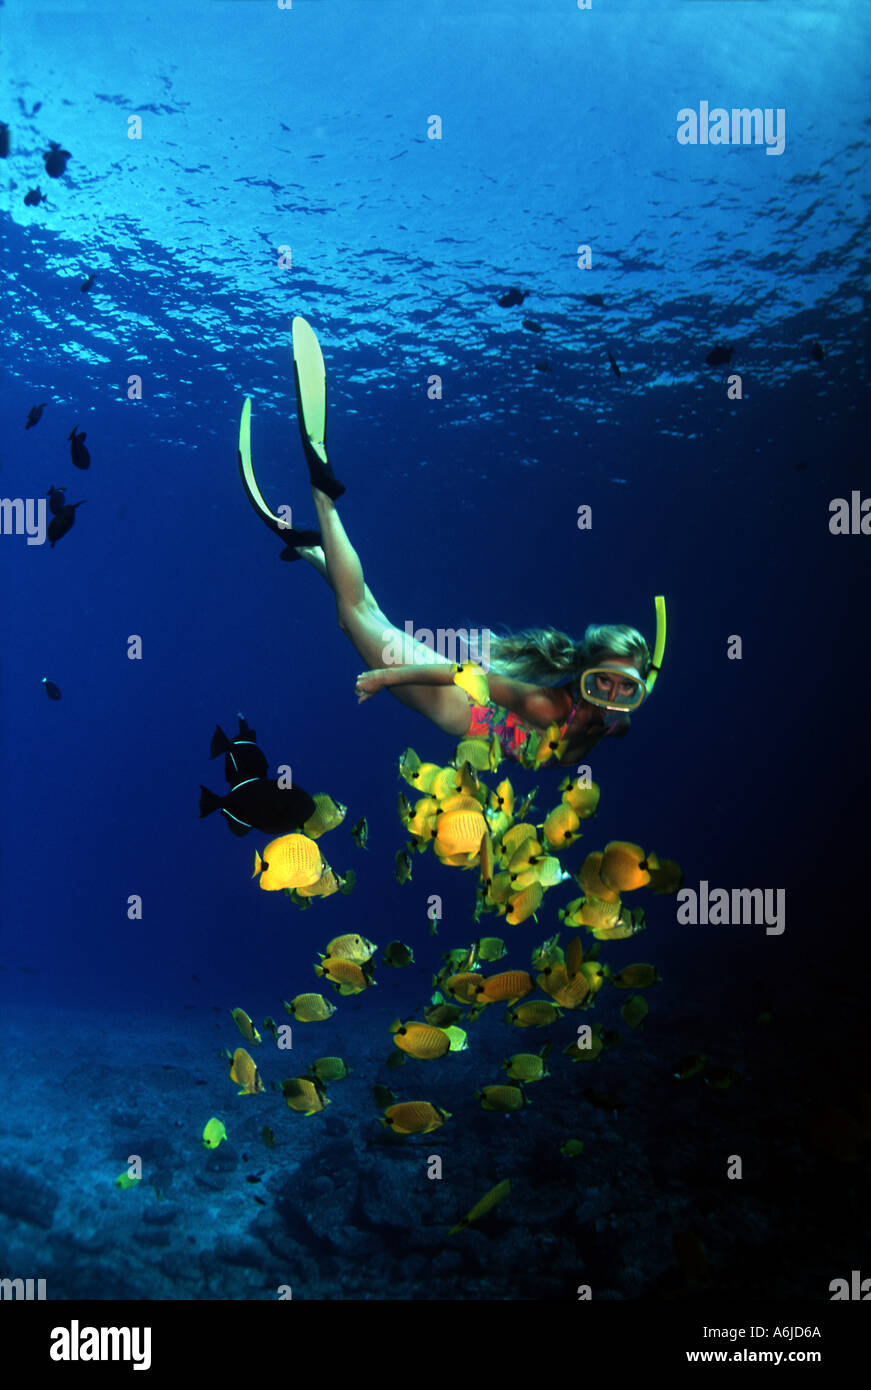 A WOMAN FREE DIVING UNDERWATER WITH BUTTERFLYFISH. HAWAII